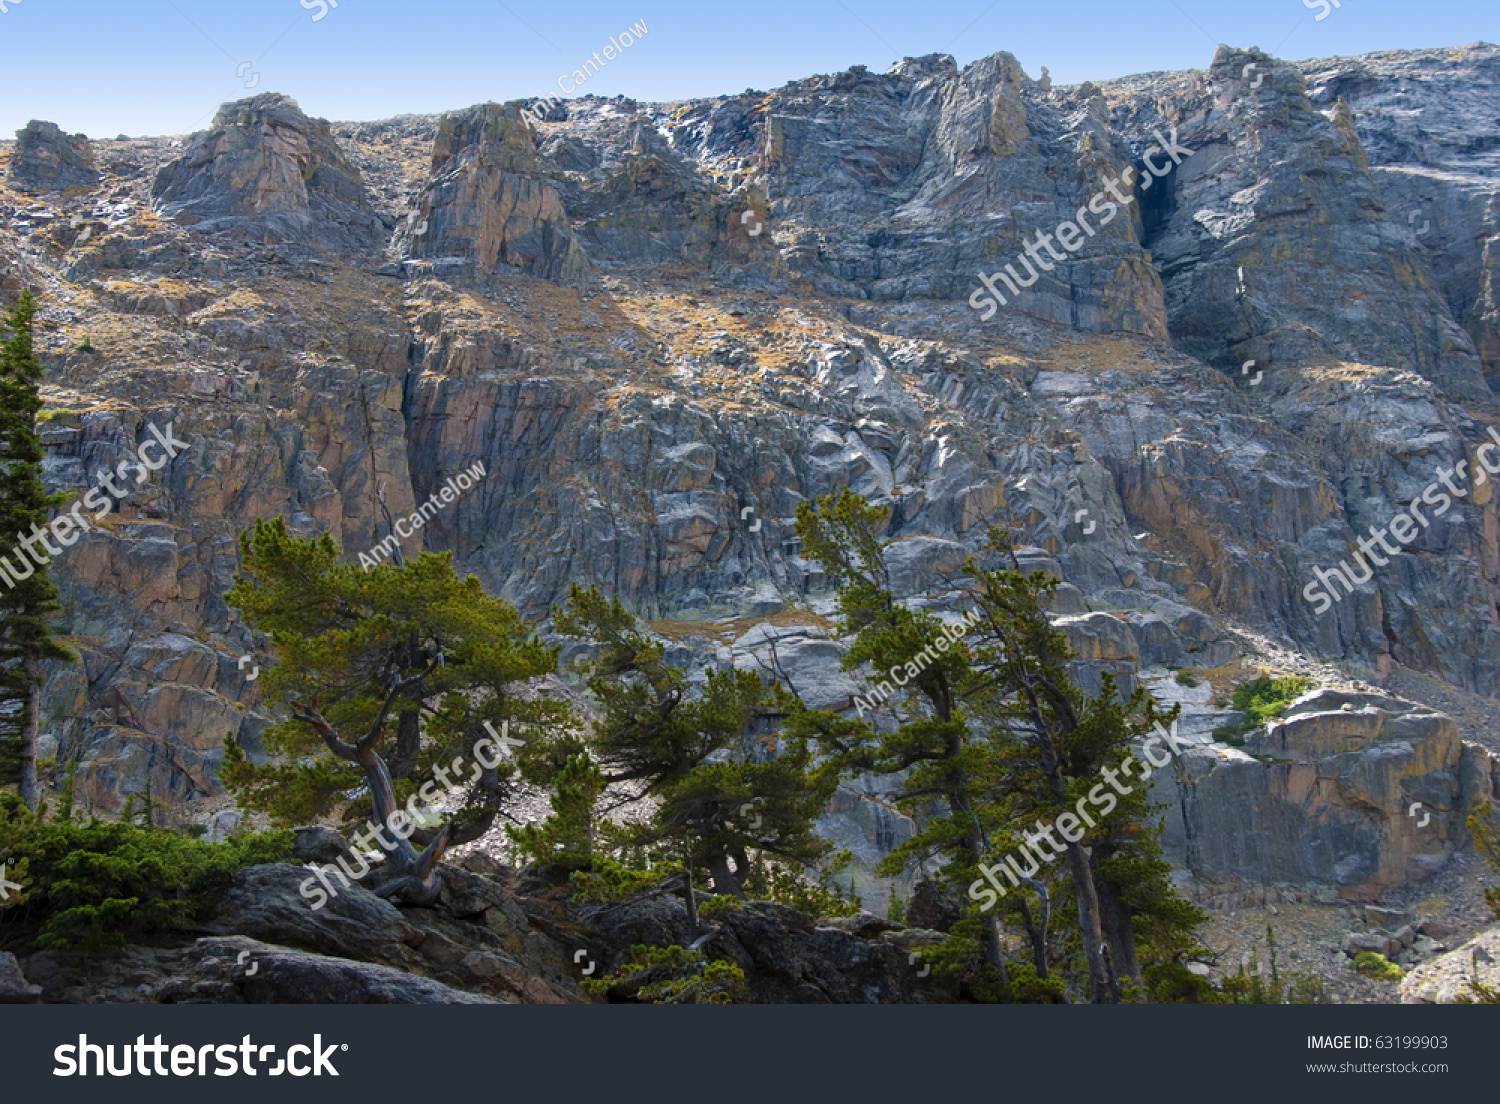 Gray cliff face colorado rocky mountains stock photo 63199903 gray cliff face in the colorado rocky mountains with lichens and a foreground of pine trees sciox Image collections